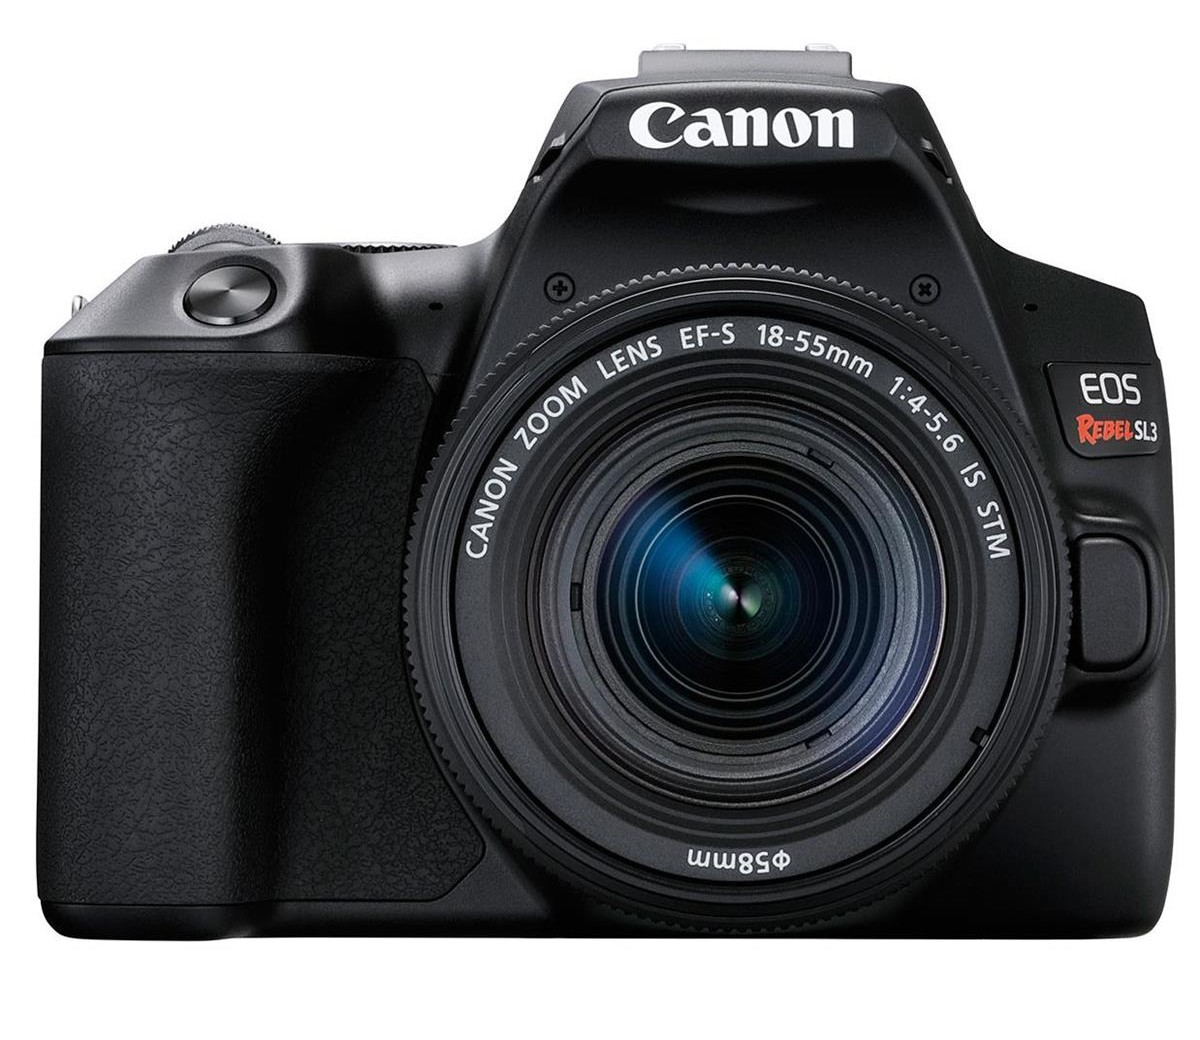 canon rebel sl3 front image